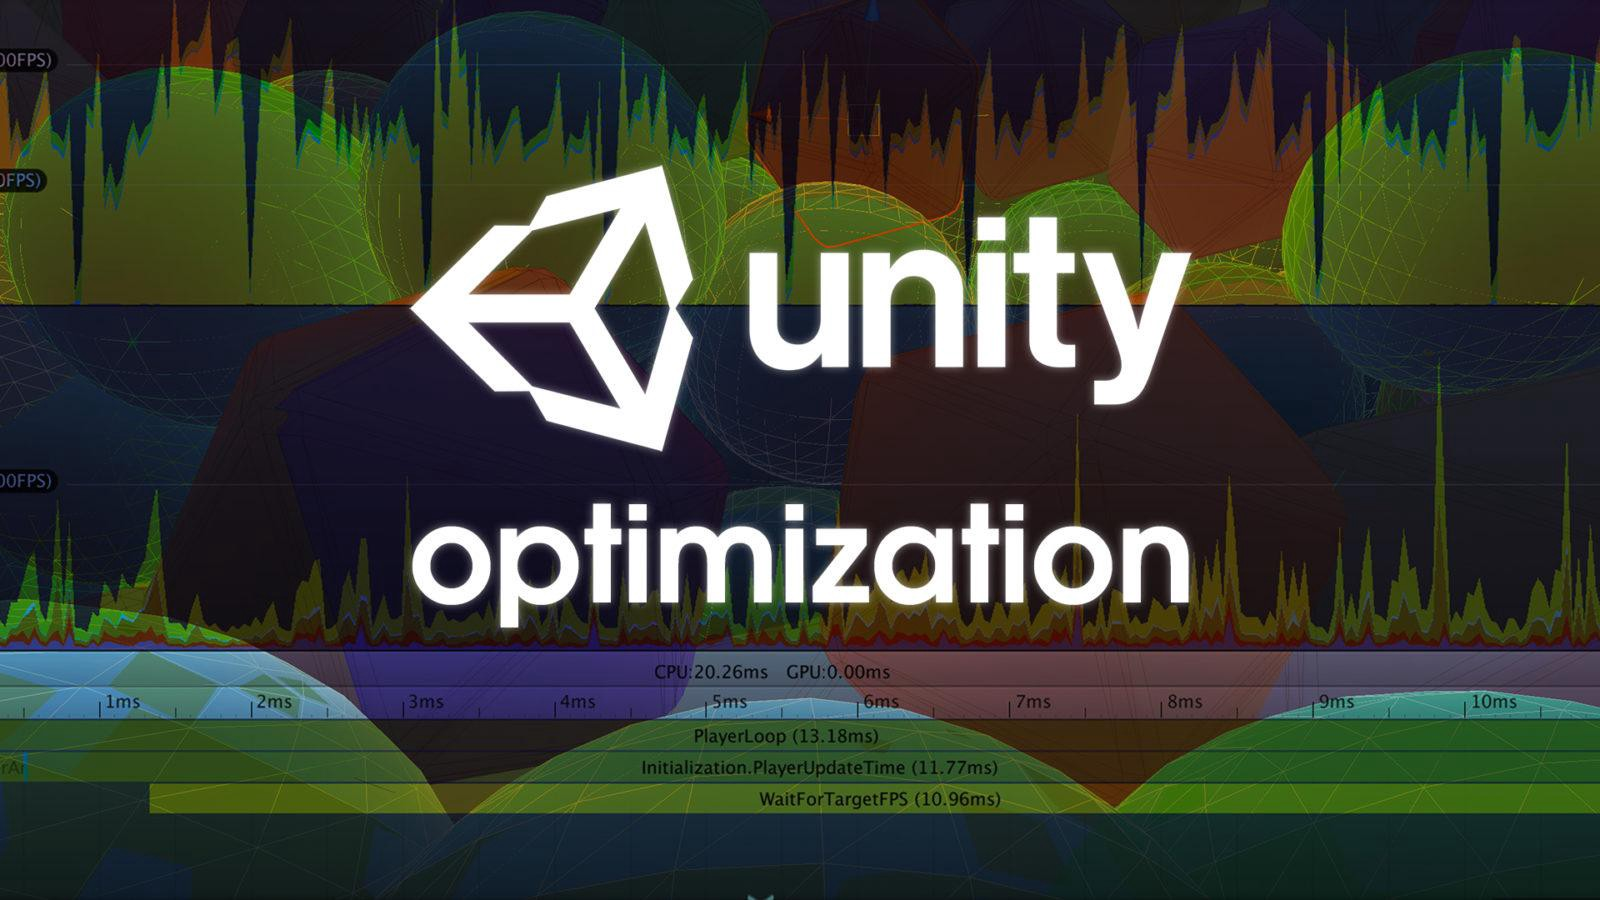 7 Unity GUI Optimization Tips For Your Game - Woody - Medium